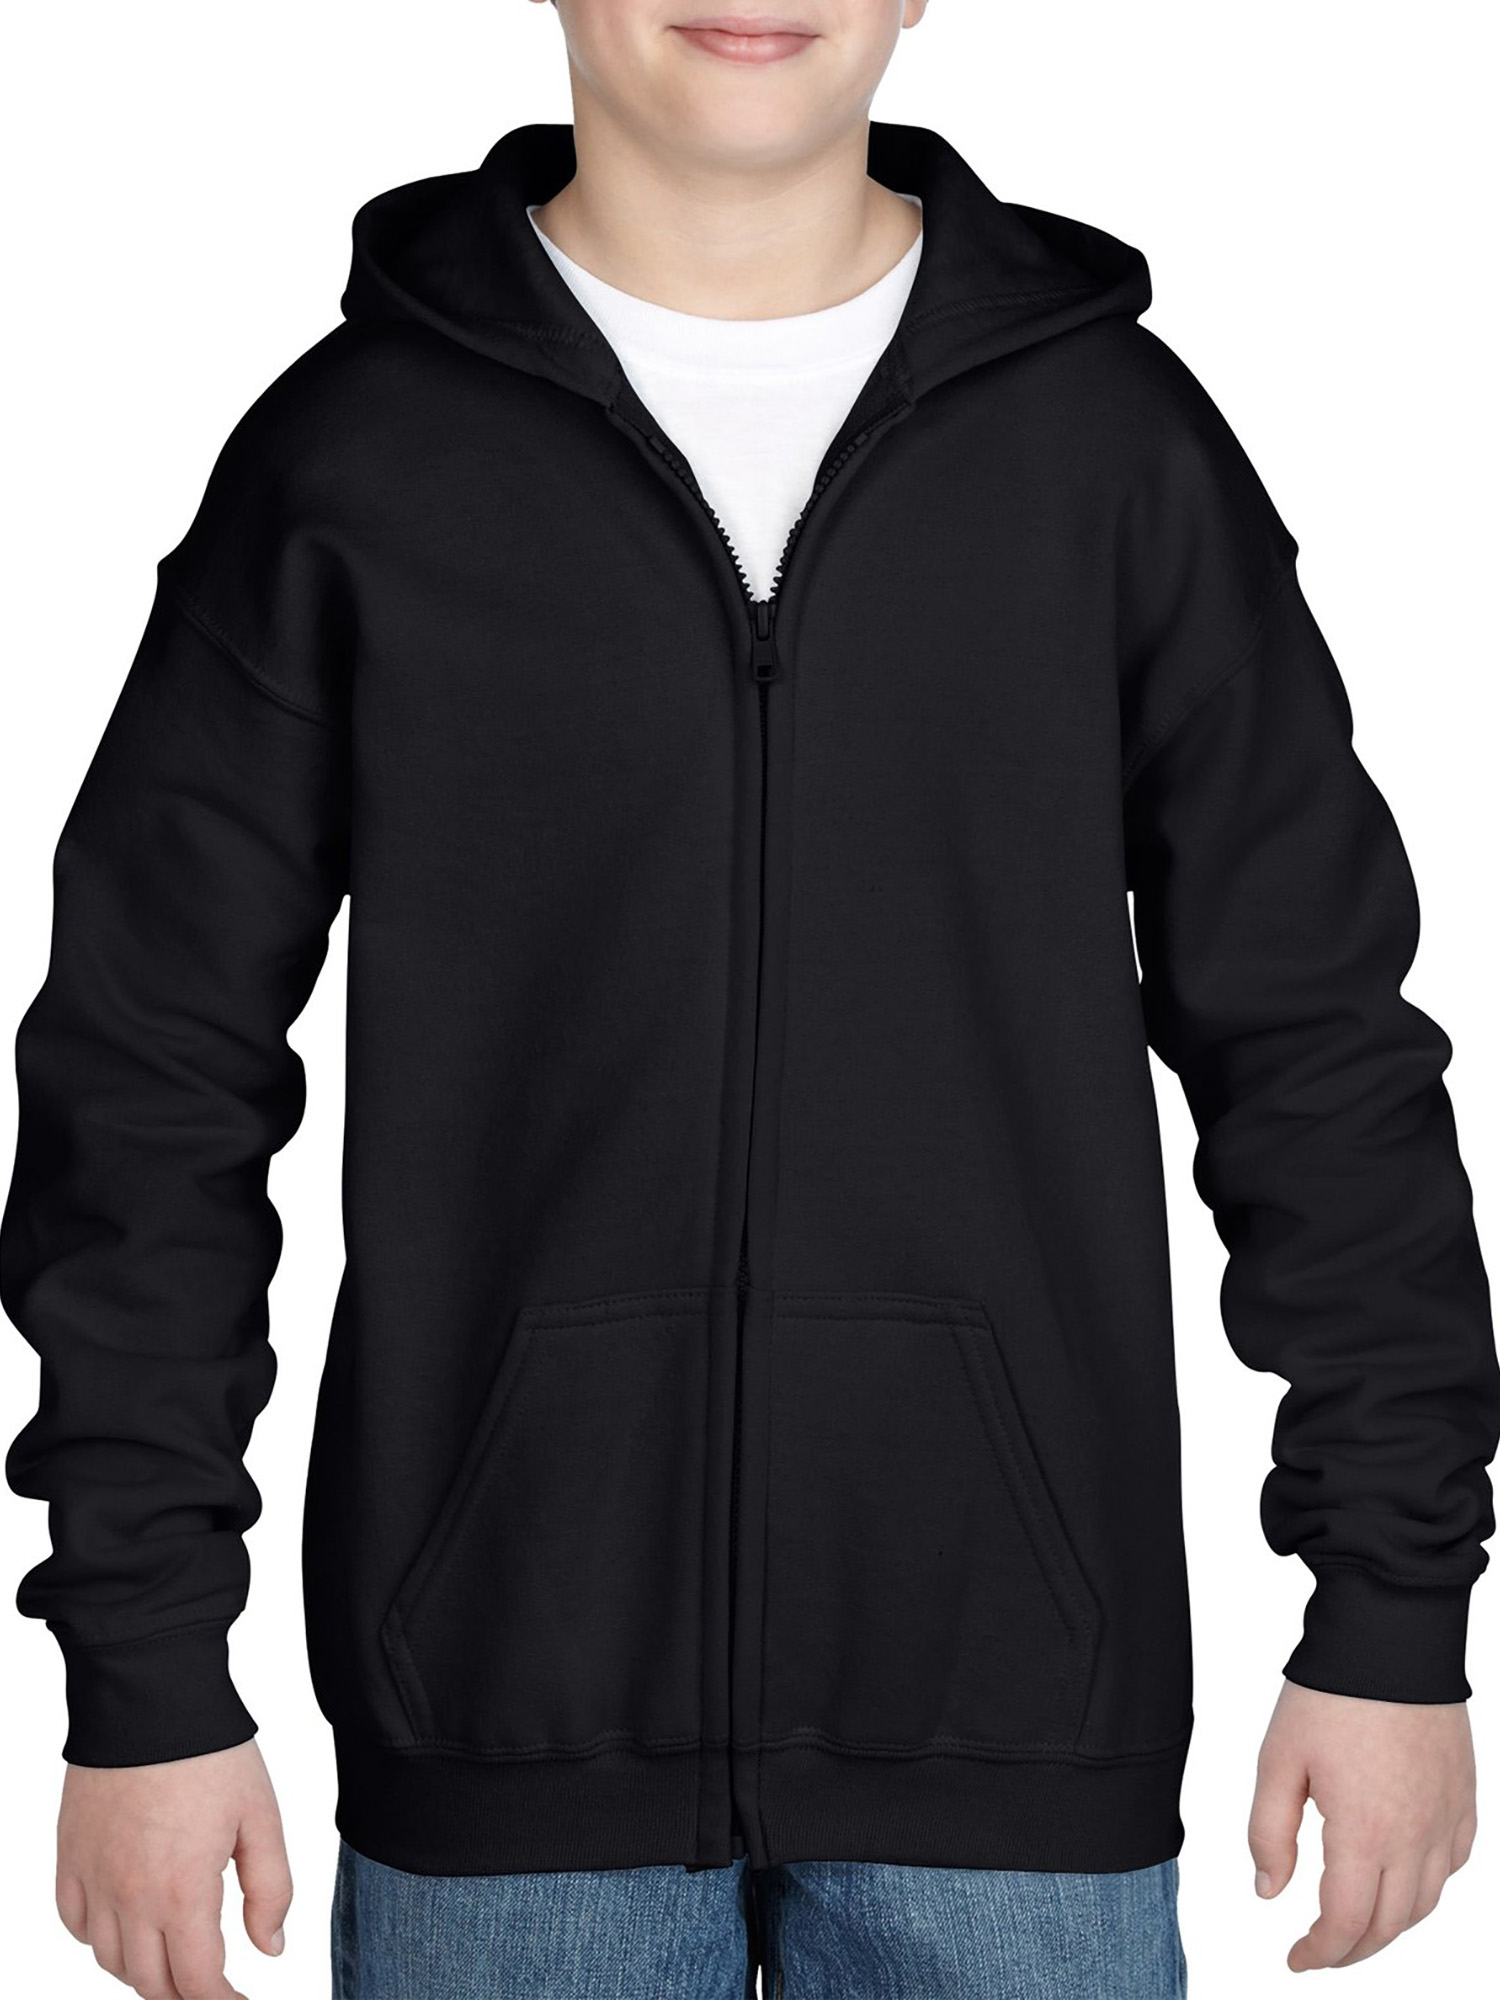 Kids Full Zip Hooded Sweatshirt